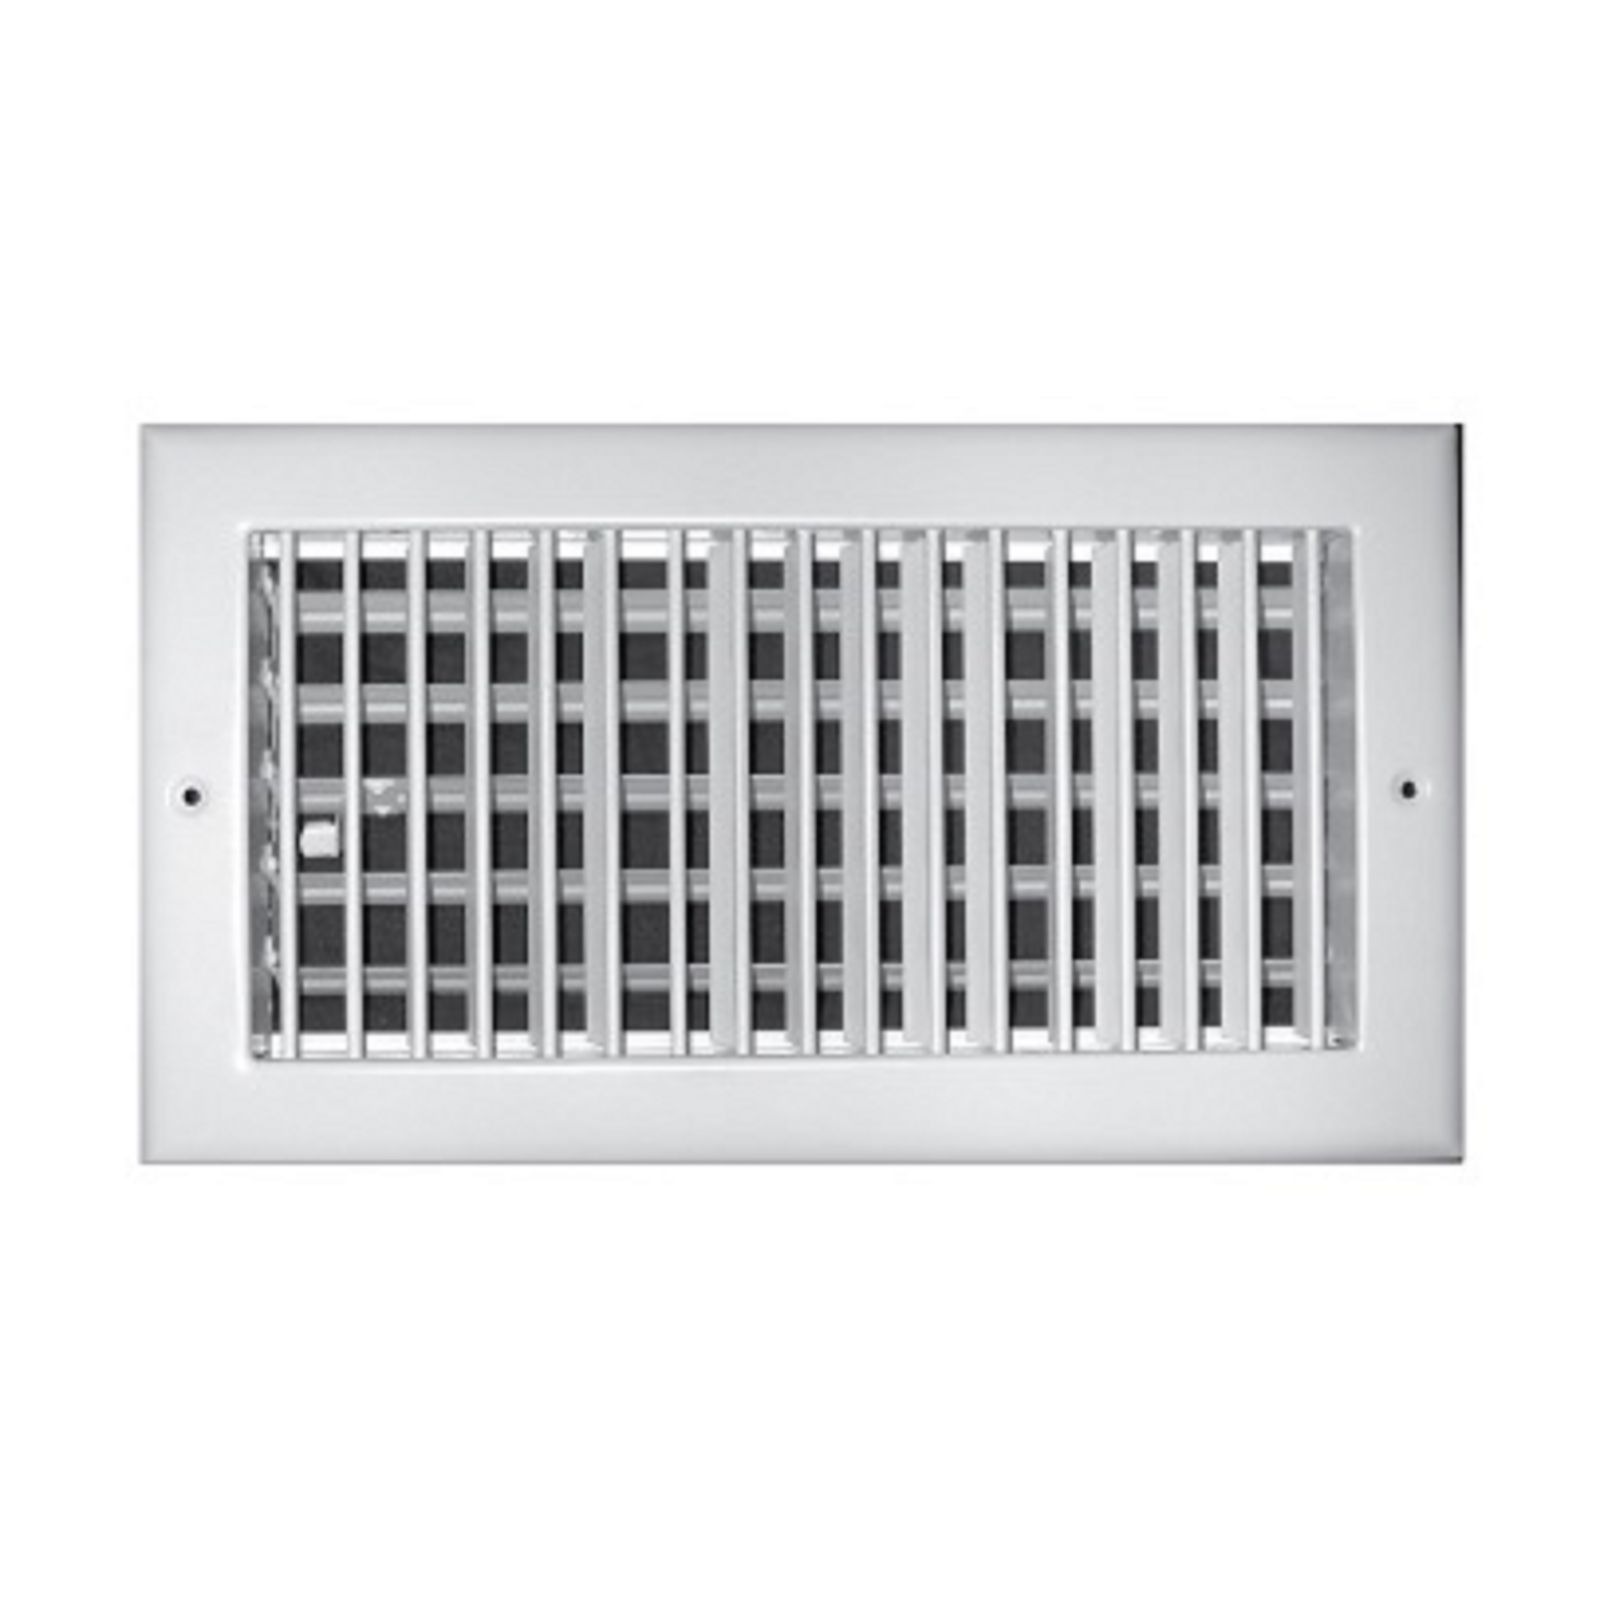 "TRUaire A210VM 06X06 - Aluminum Adjustable 1-Way Wall/Ceiling Register, Vertical, Multi Shutter Damper, White, 06"" X 06"""